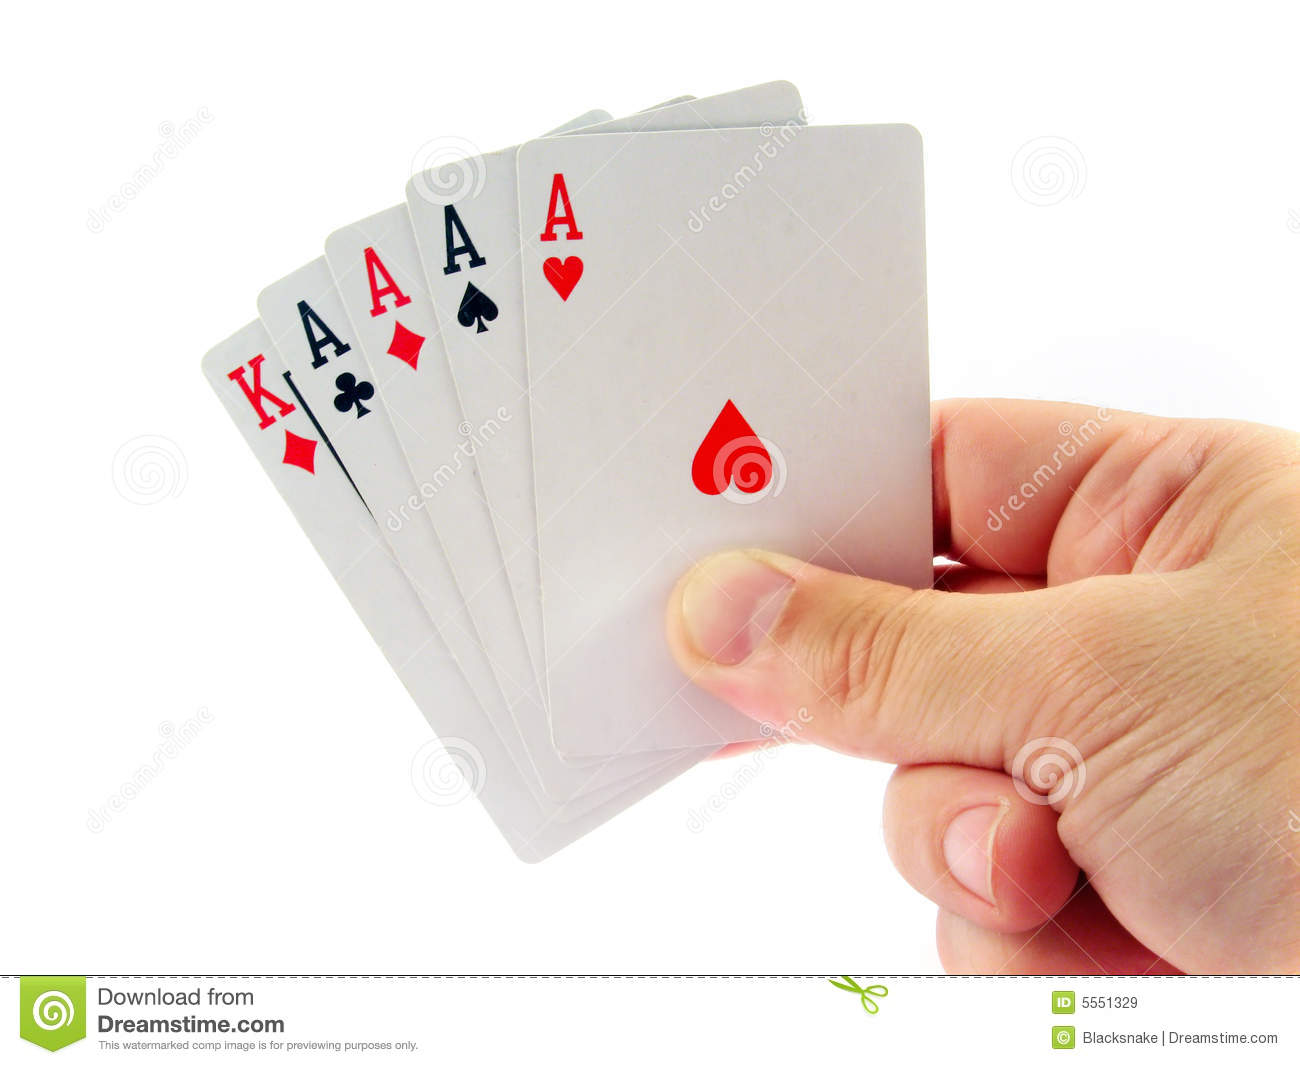 what is a hand of 4 aces in poker